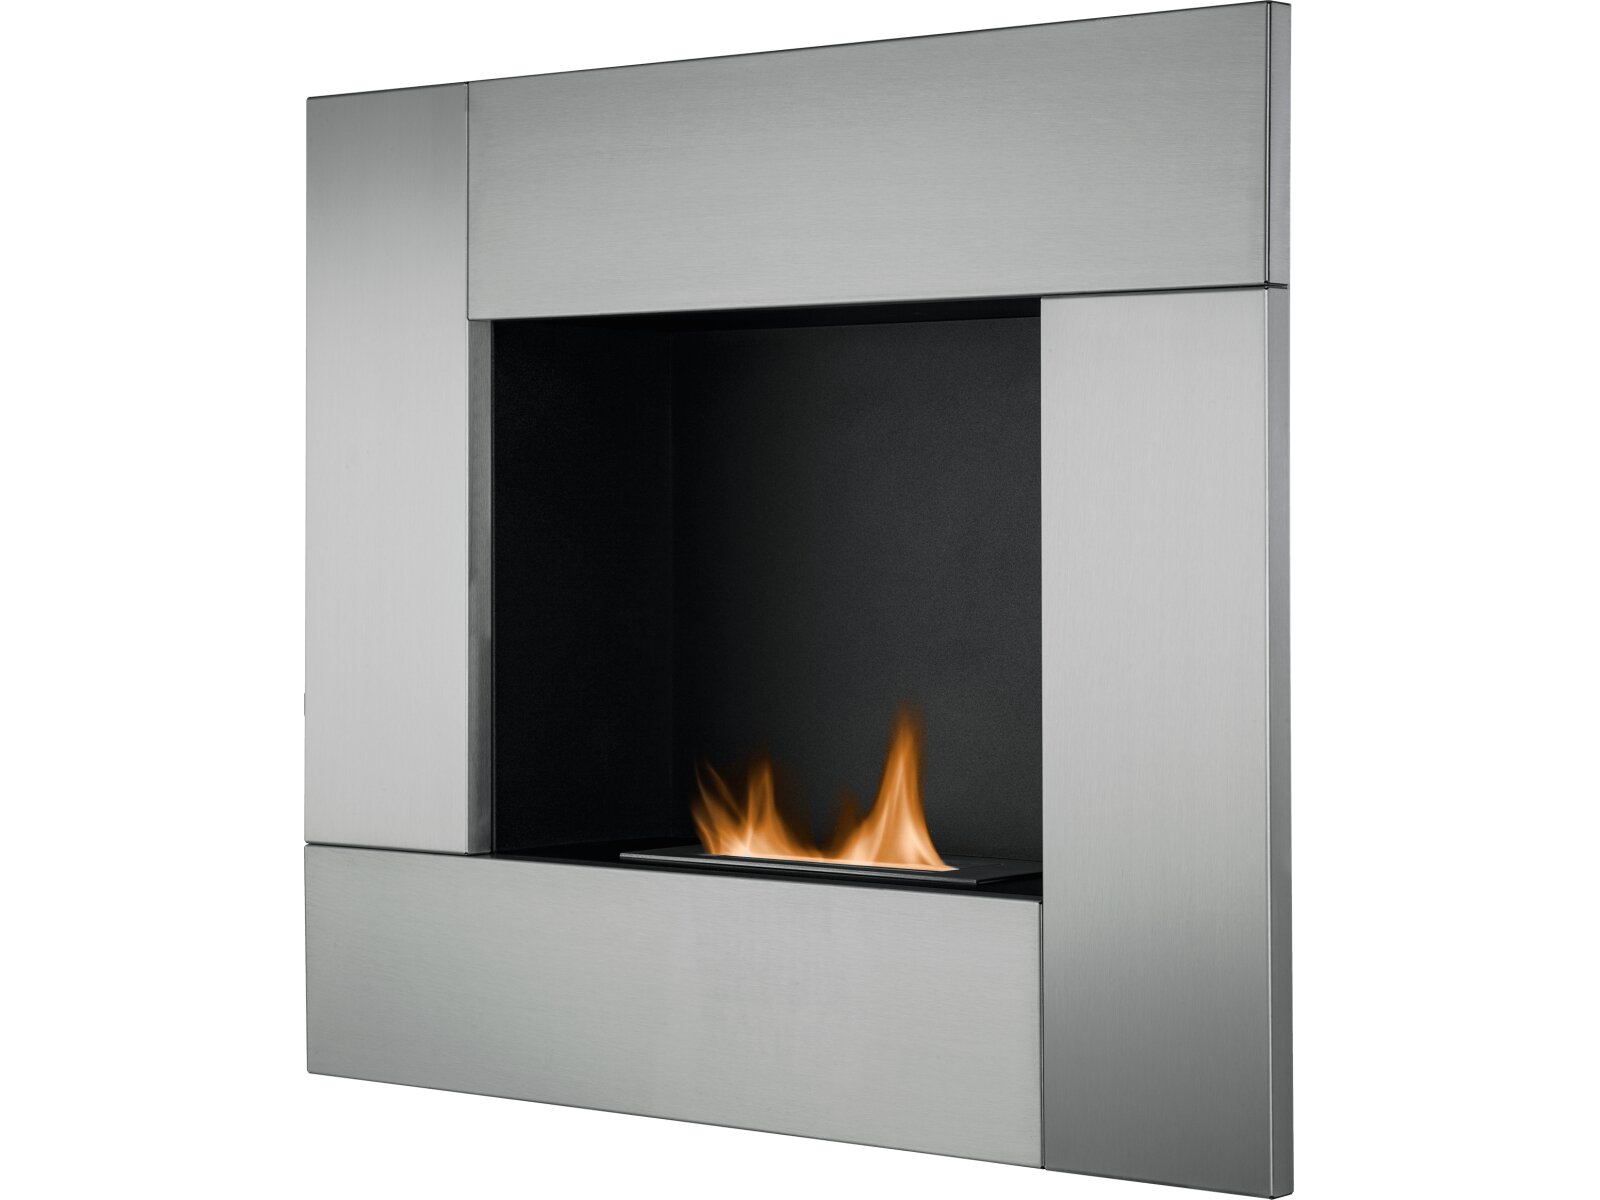 The Galaxy Wall Mounted Bio Ethanol Fire in Stainless